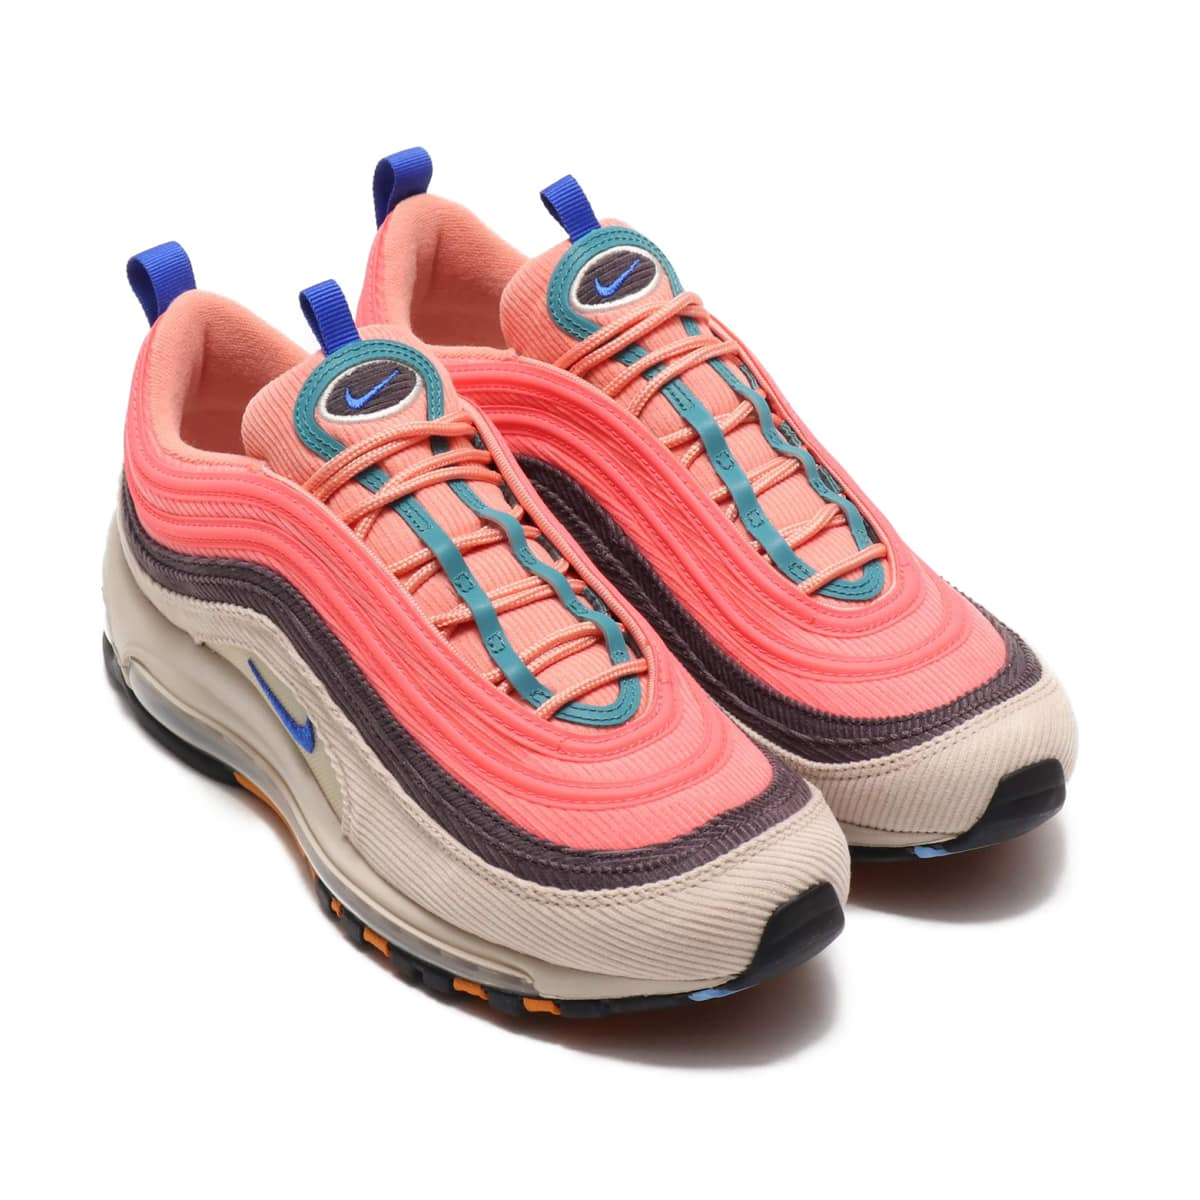 NIKE AIR MAX 97 DESERT SAND/RACER BLUE-THUNDER GREY 19HO-S_photo_large